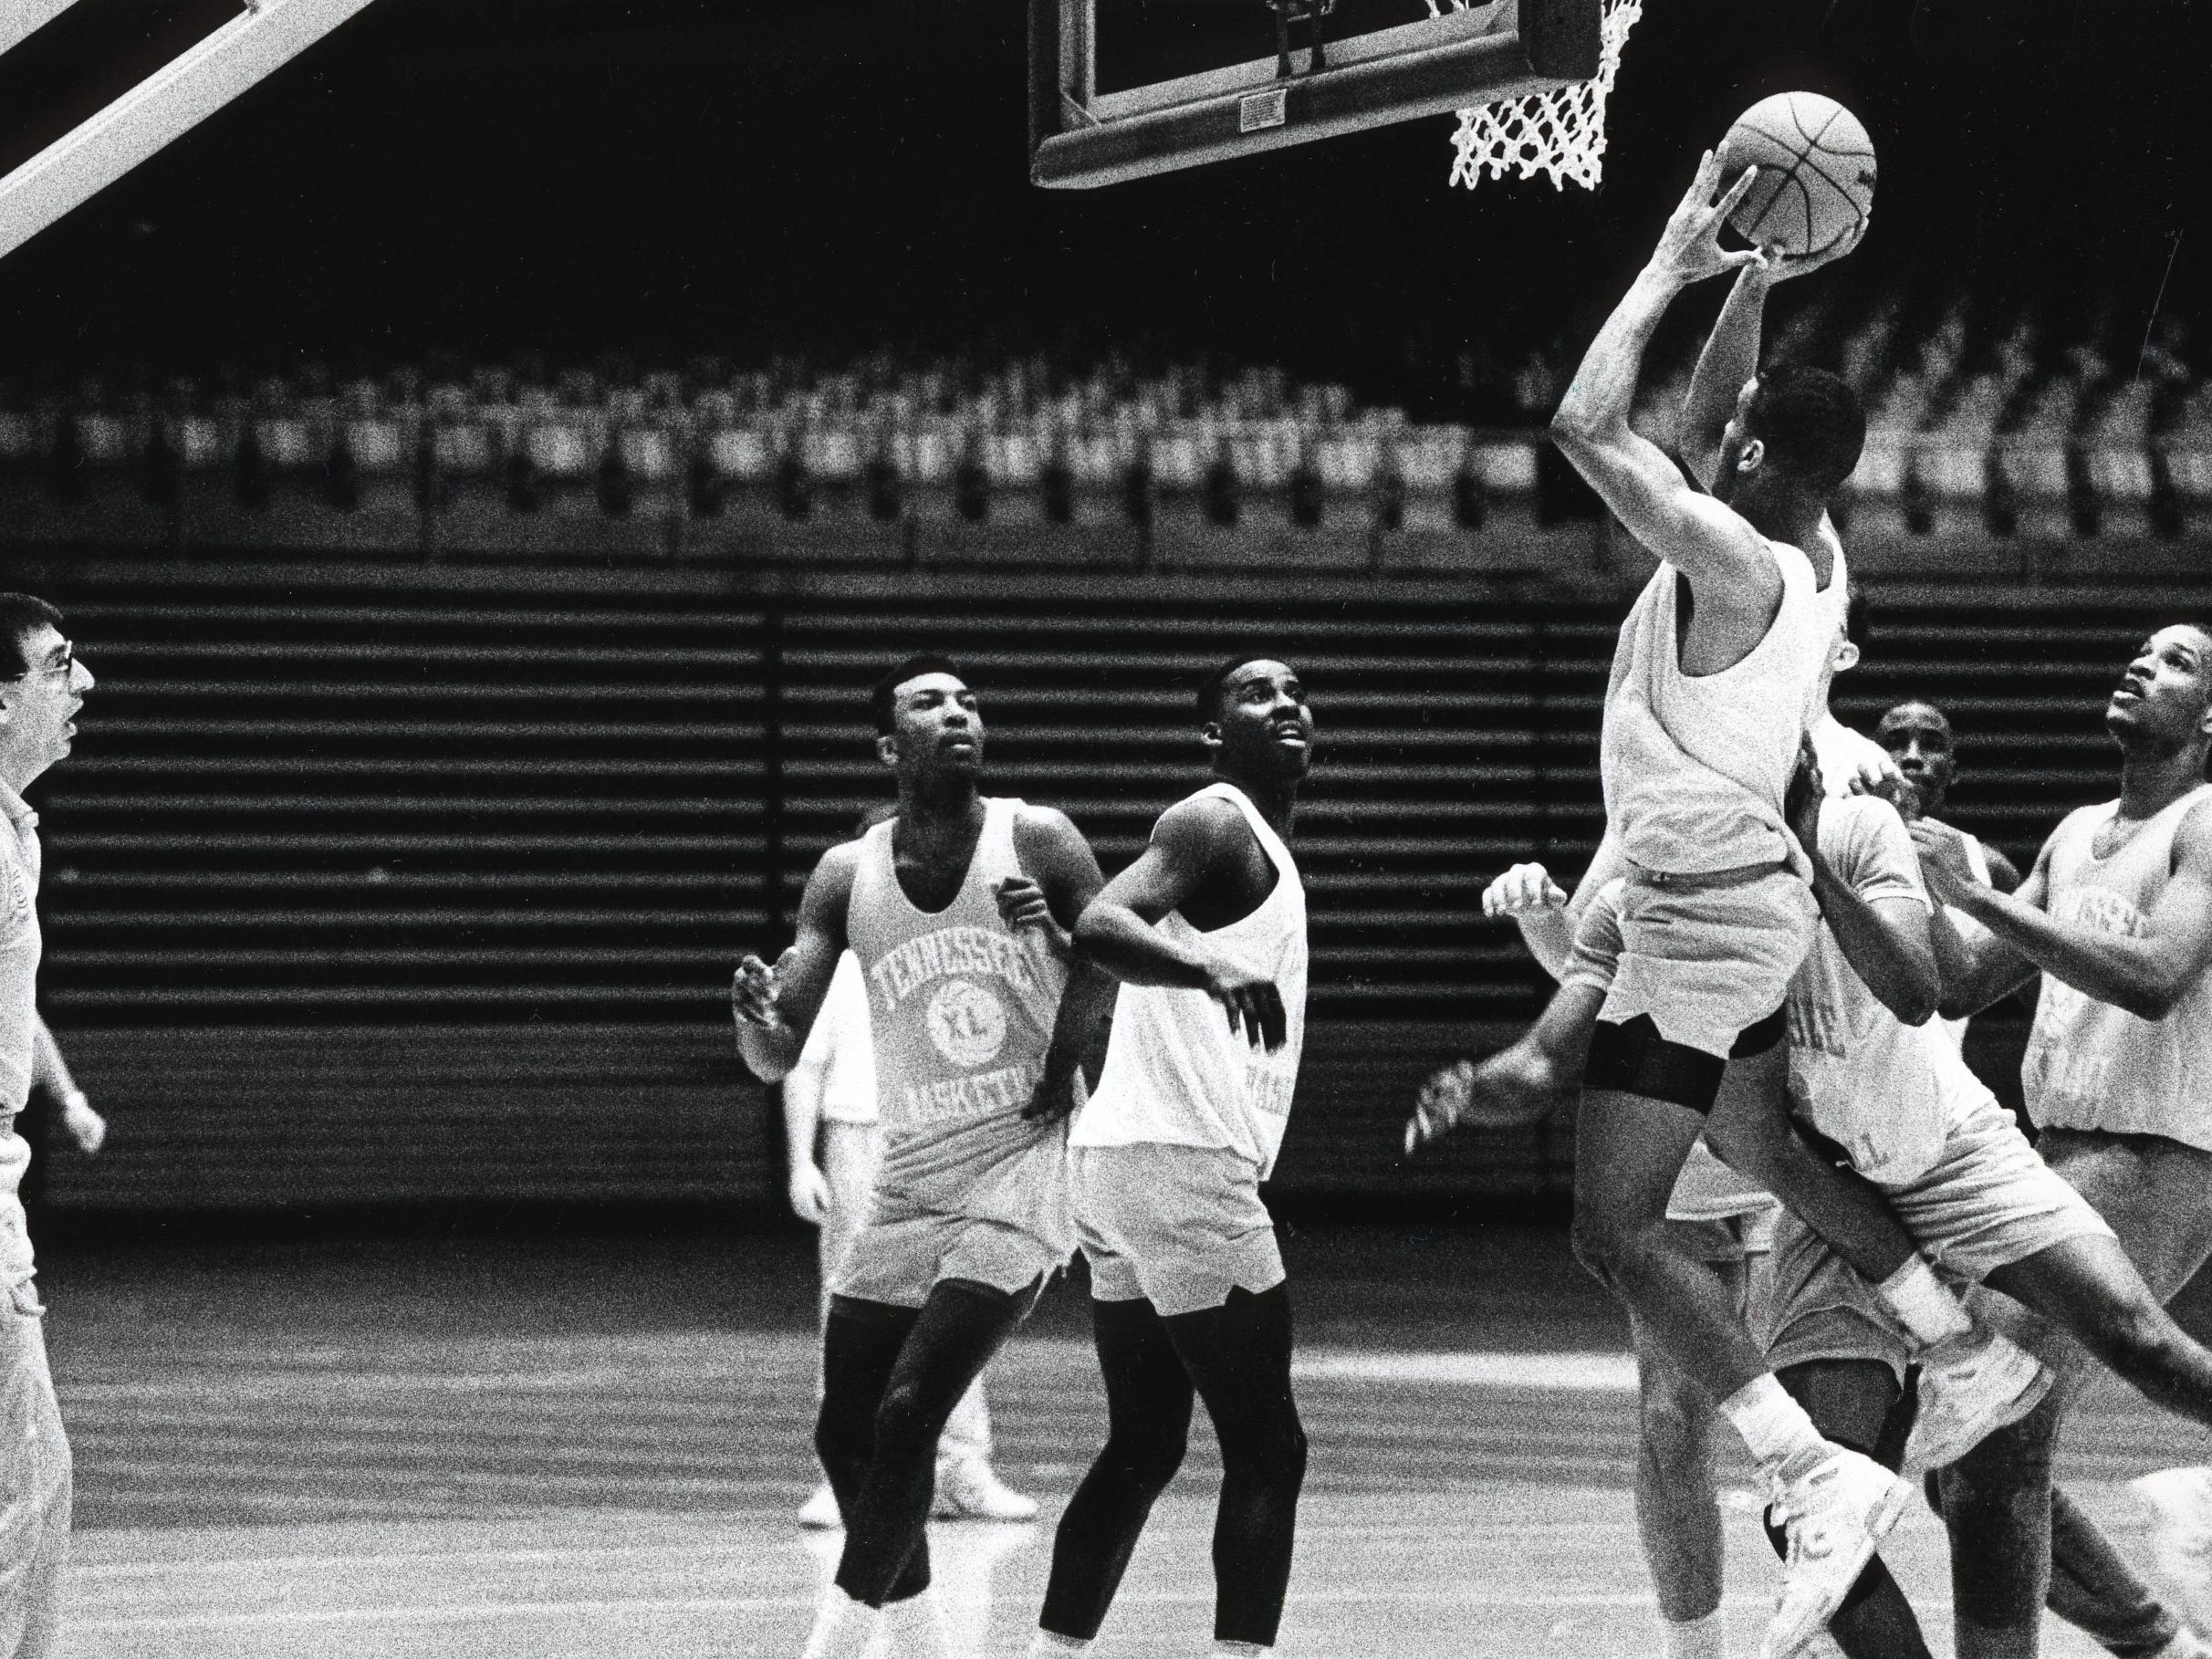 Don Devoe coaches the UT basketball team in practice in March 1989.